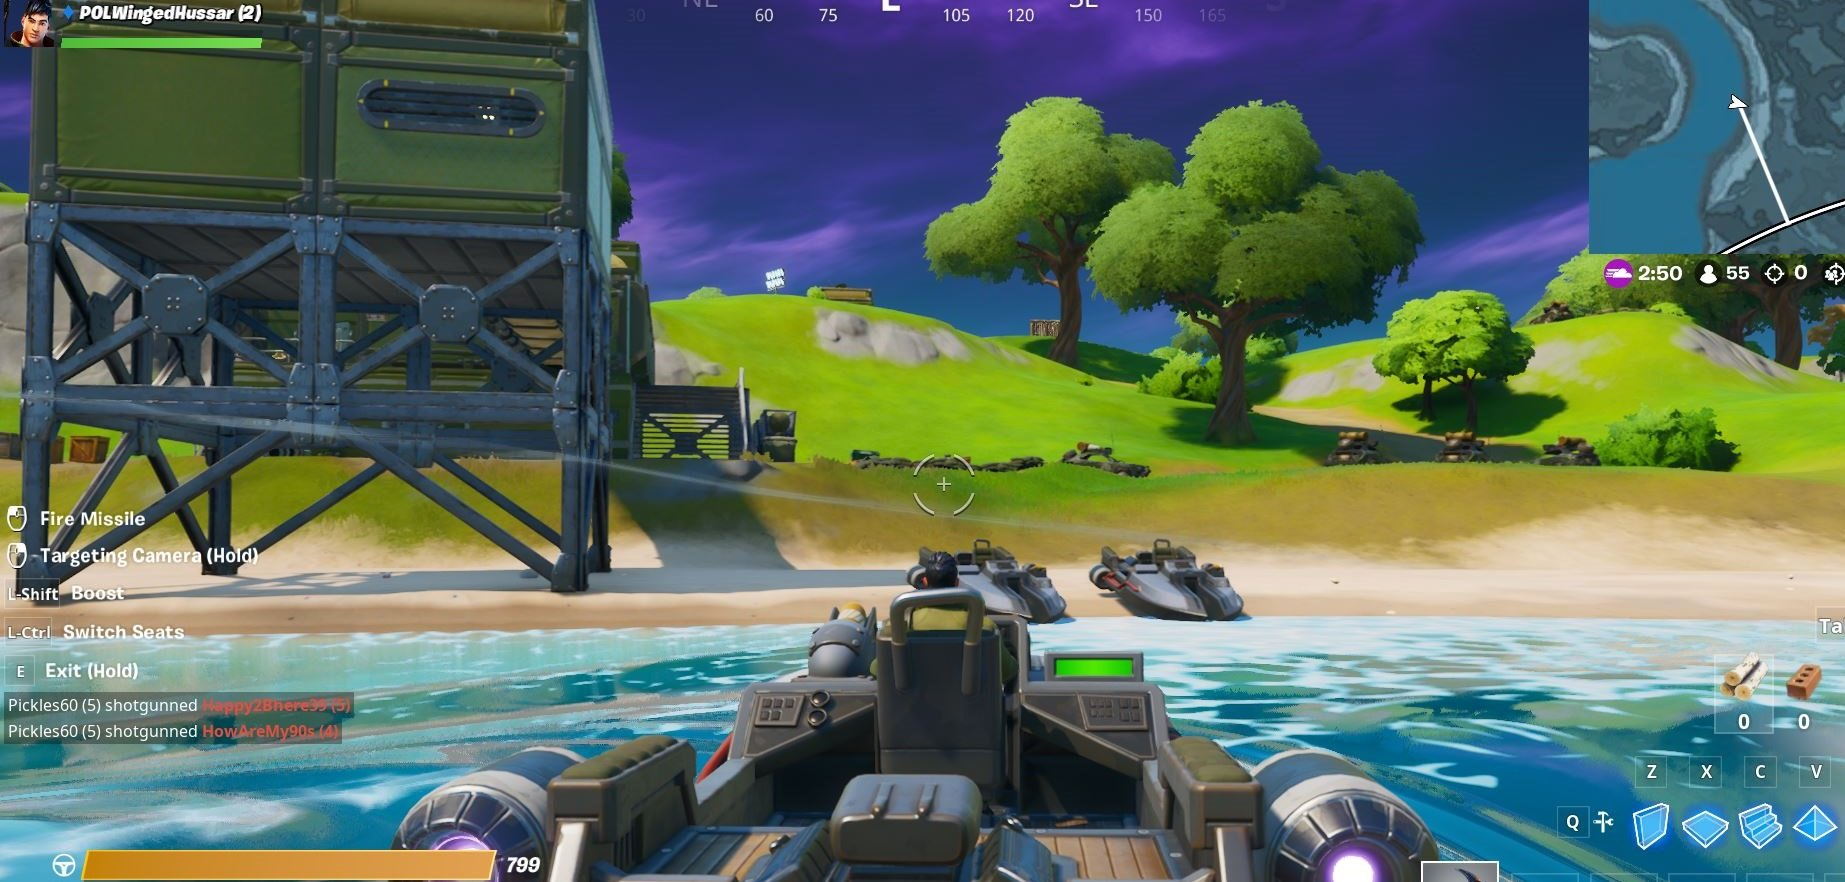 Right before you reach Sweaty Sands, you'll find a few boats near a green outpost building.